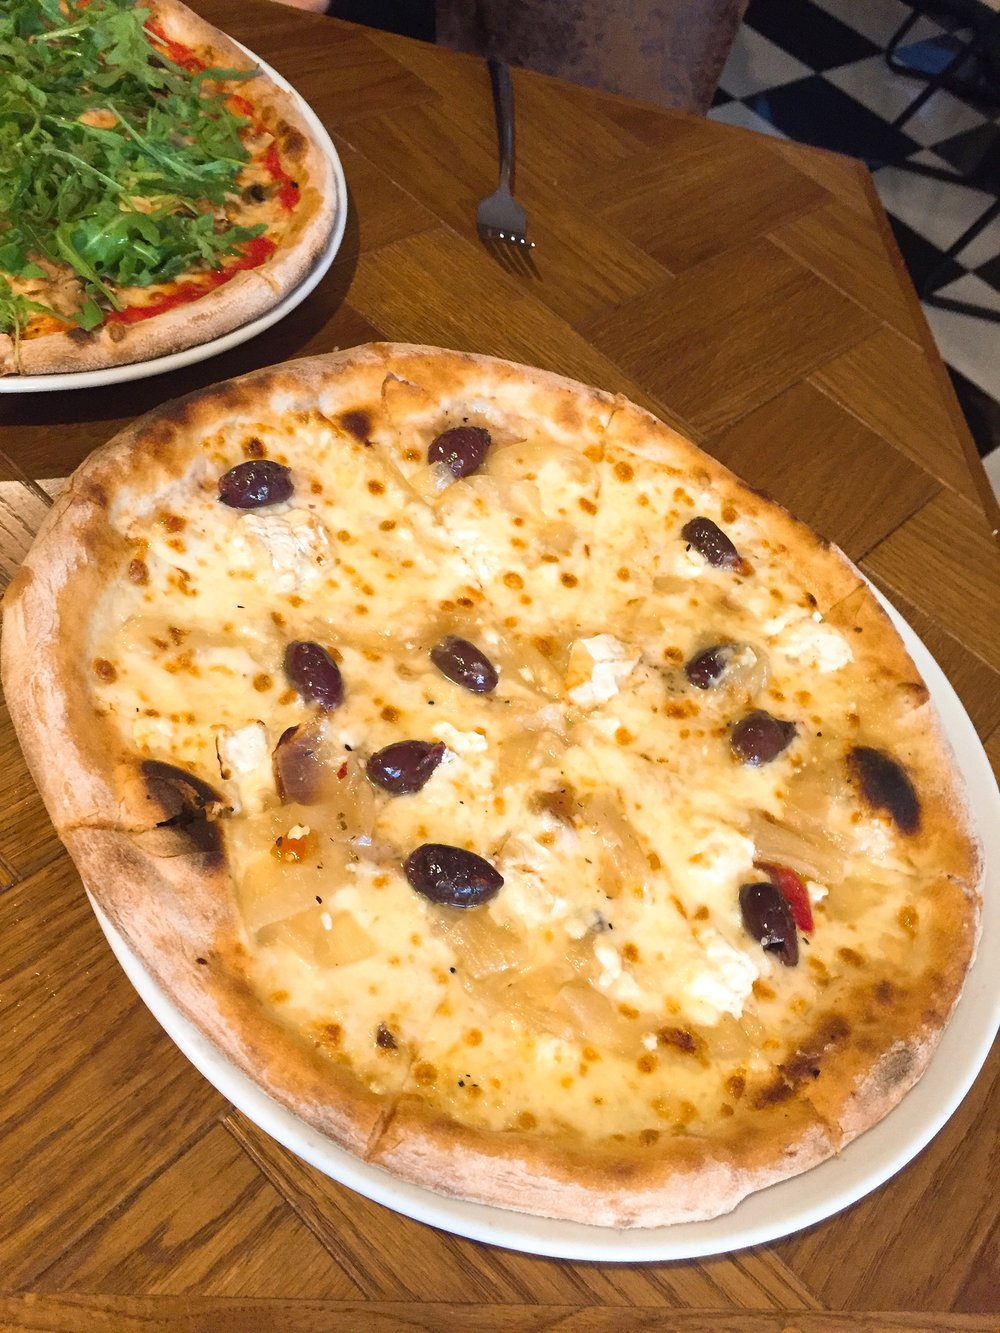 firebrand-pizza-review-marylebone_30070828985_o.jpg